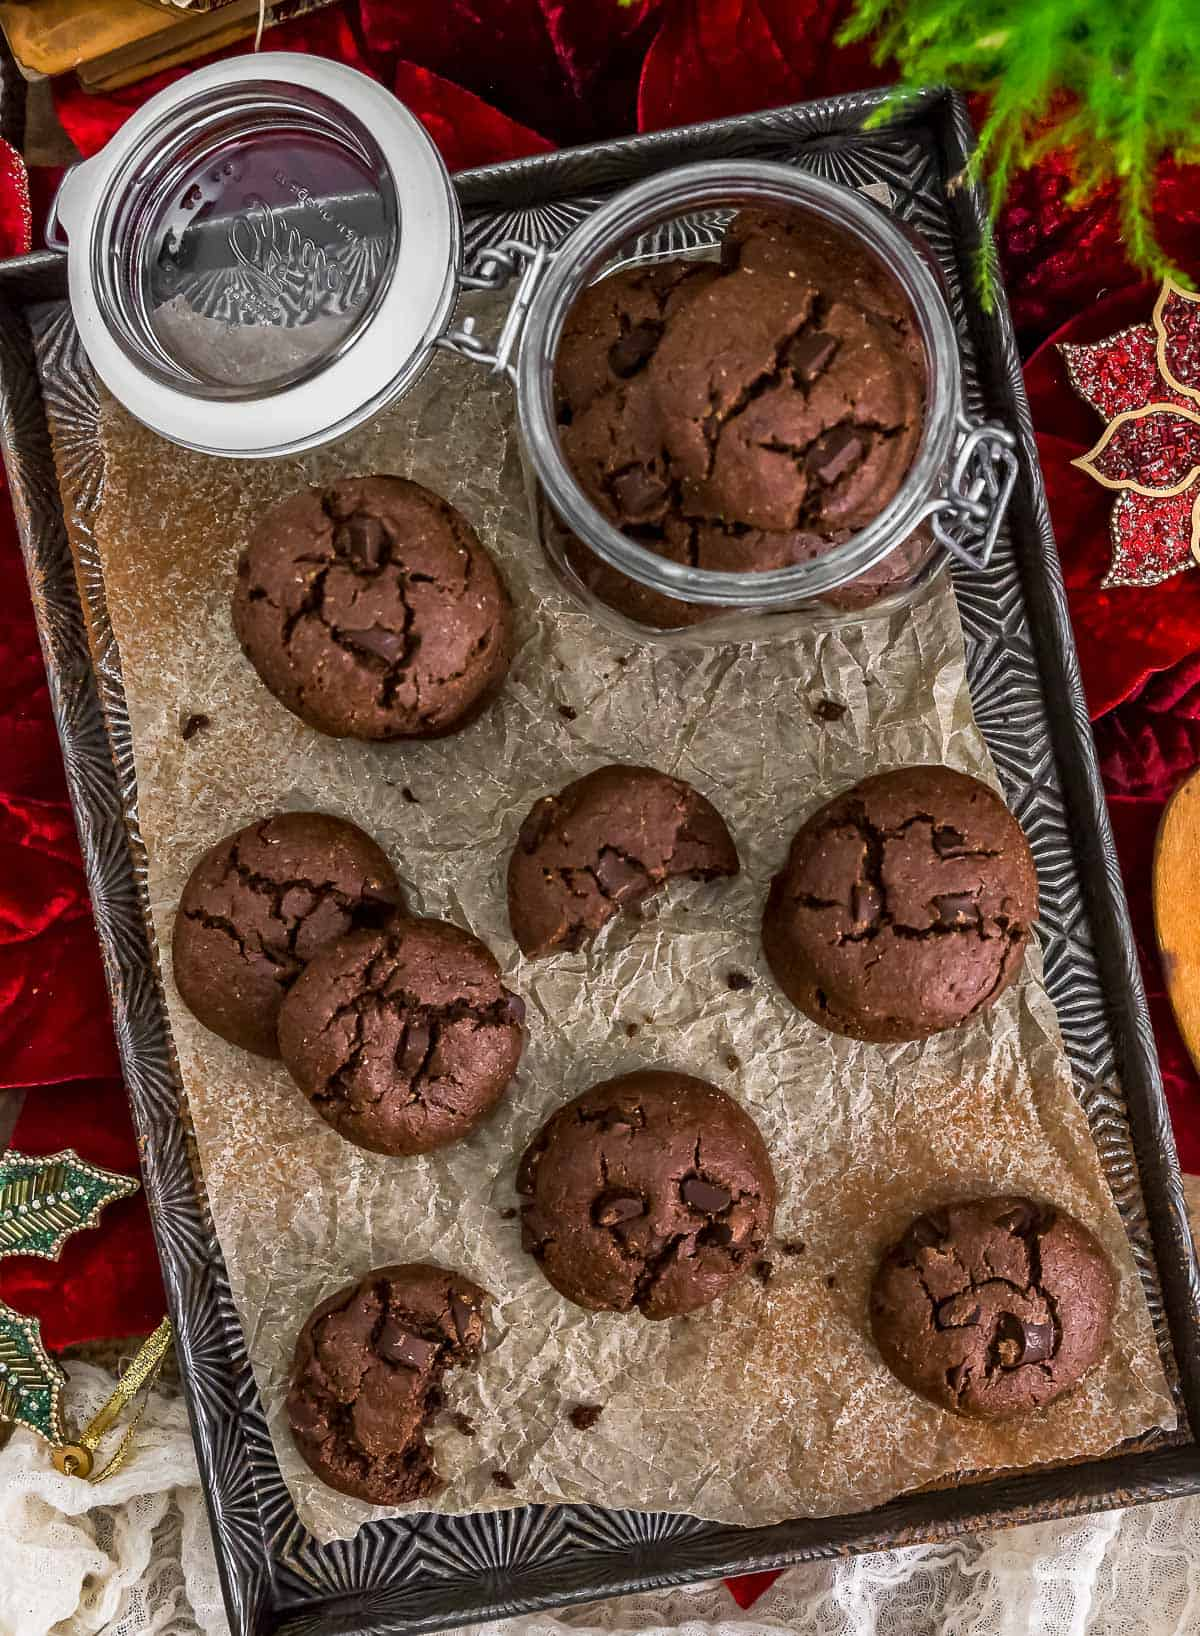 Tray of Vegan Double Chocolate Peppermint Cookies